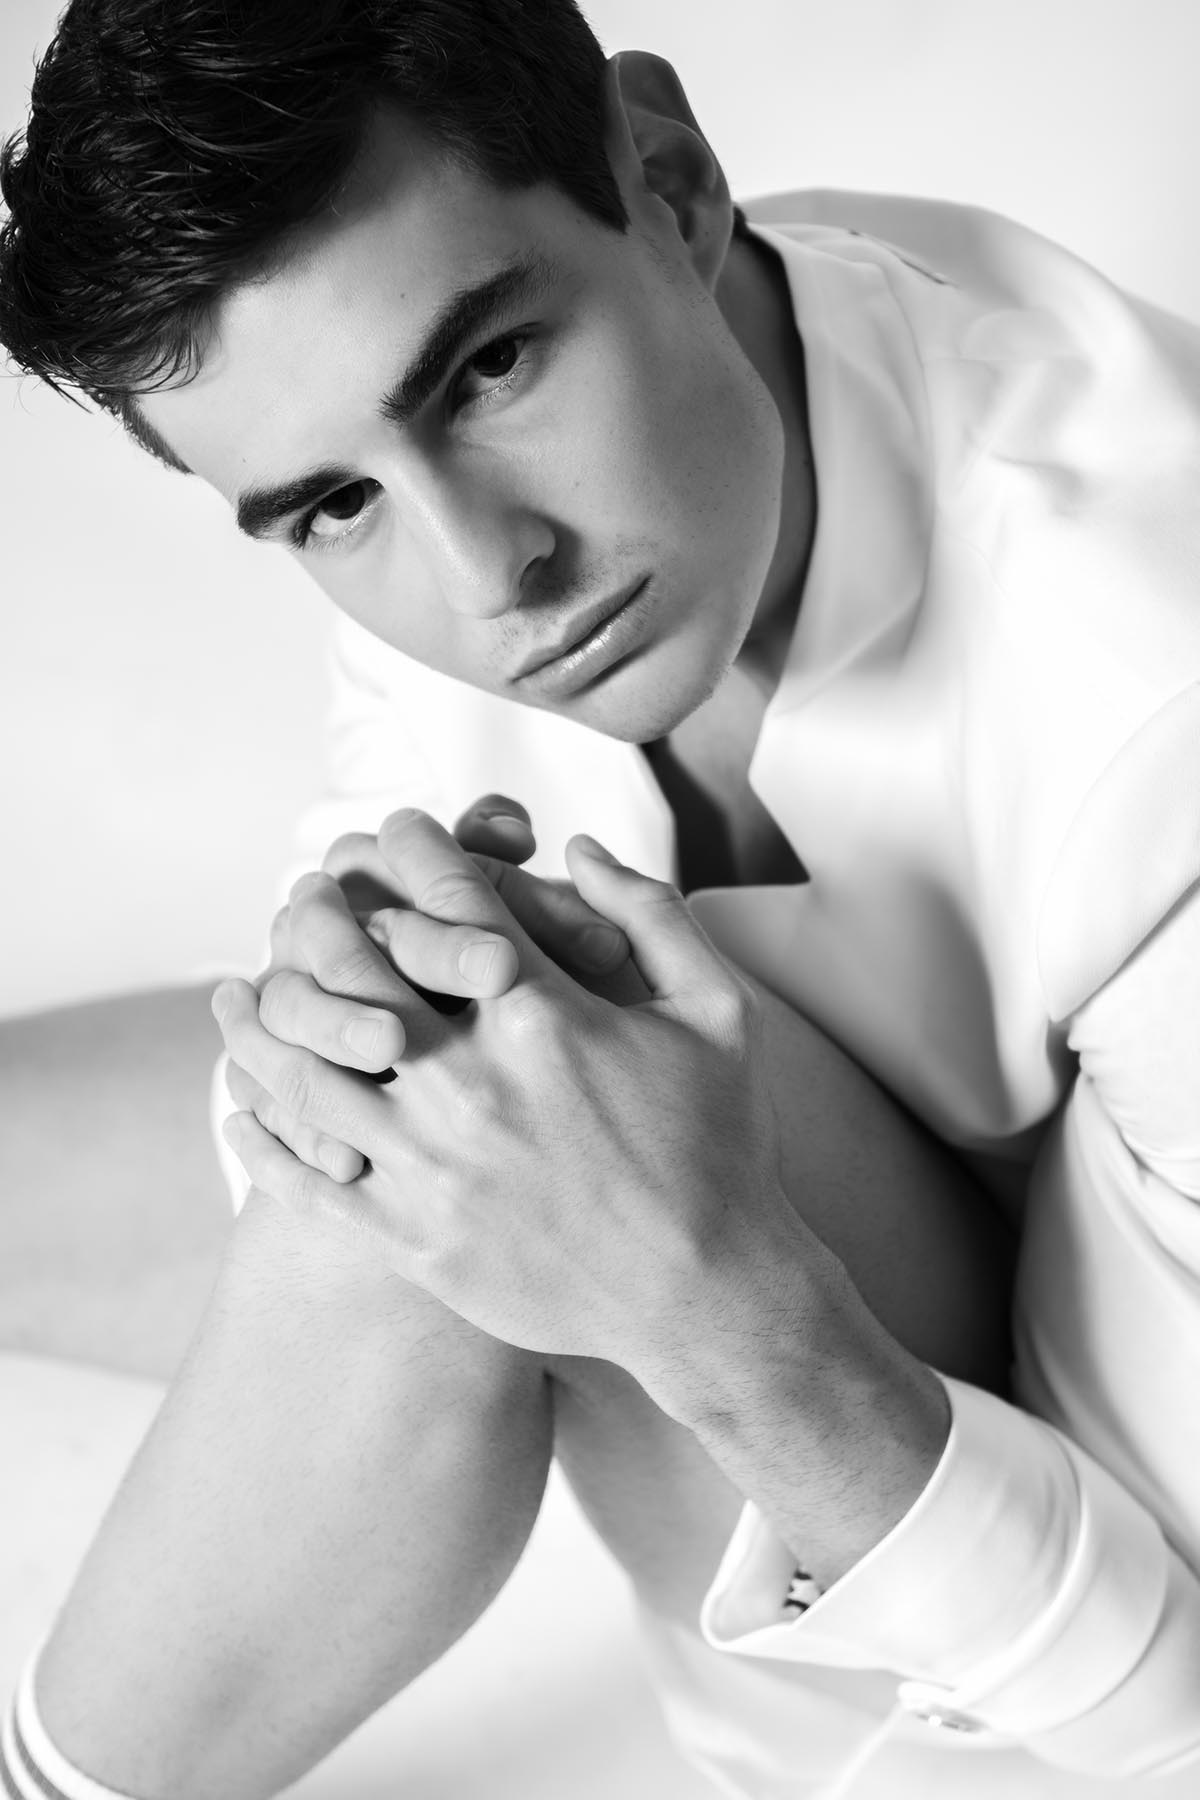 Gianluca Vallata by Felipe Valim for Brazilian Male Model